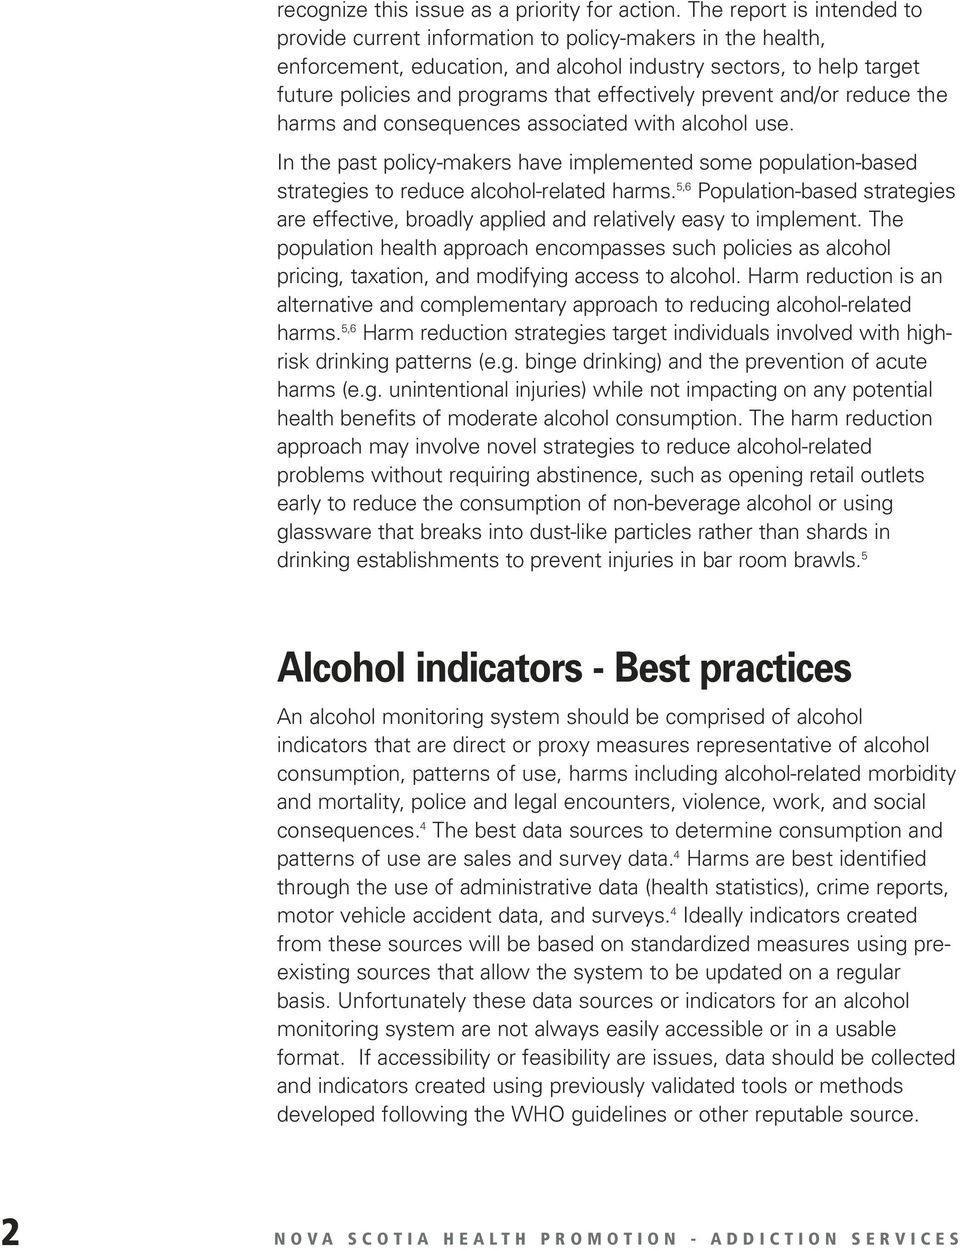 effectively prevent and/or reduce the harms and consequences associated with alcohol use. In the past policy-makers have implemented some population-based strategies to reduce alcohol-related harms.